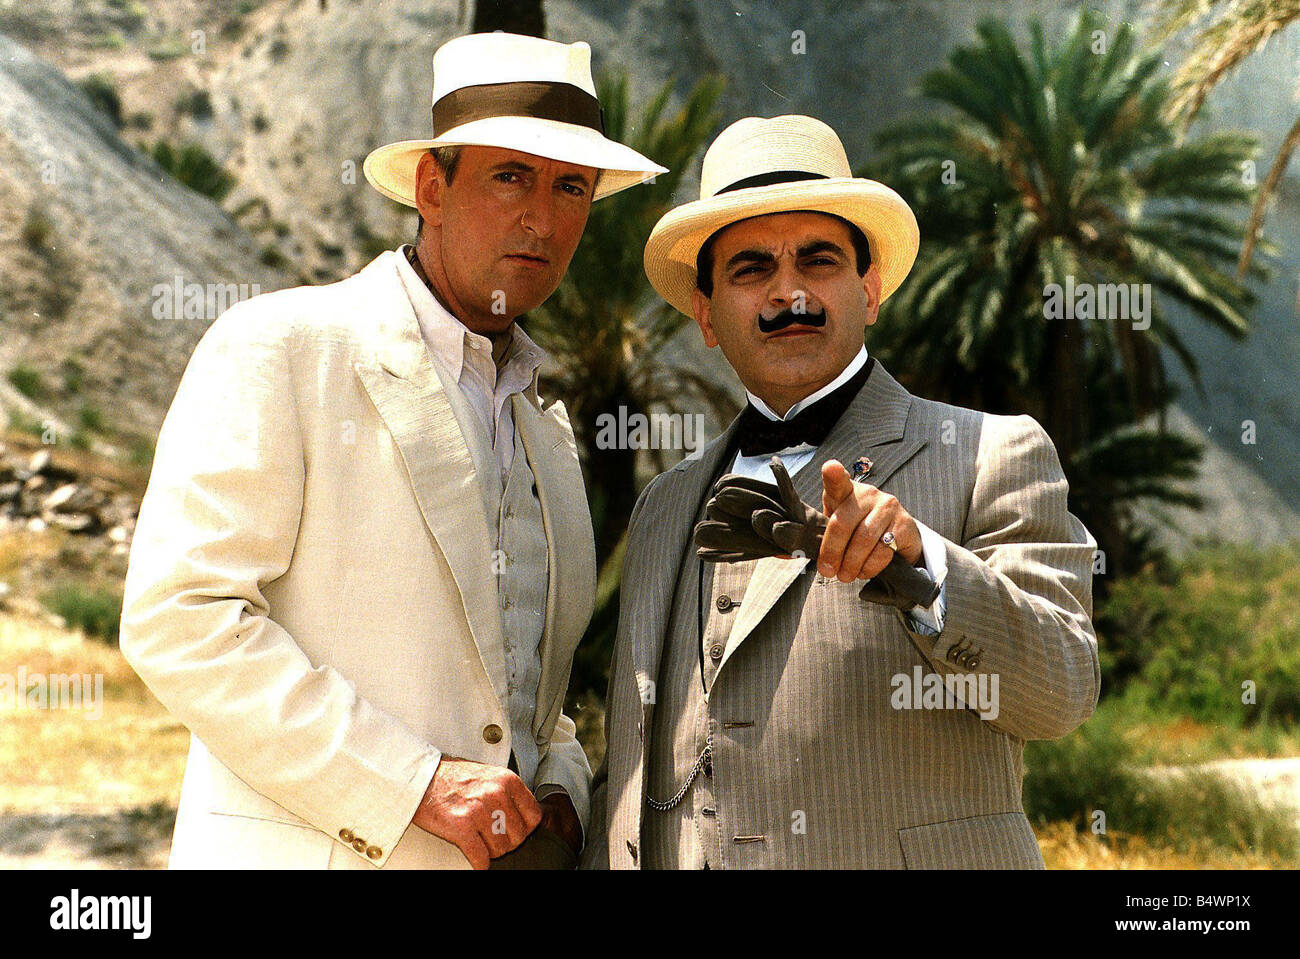 Poirot TV series starring David Sucht as Poirot and Hugh Fraser as Captain Hastings on the set of the programme - Stock Image